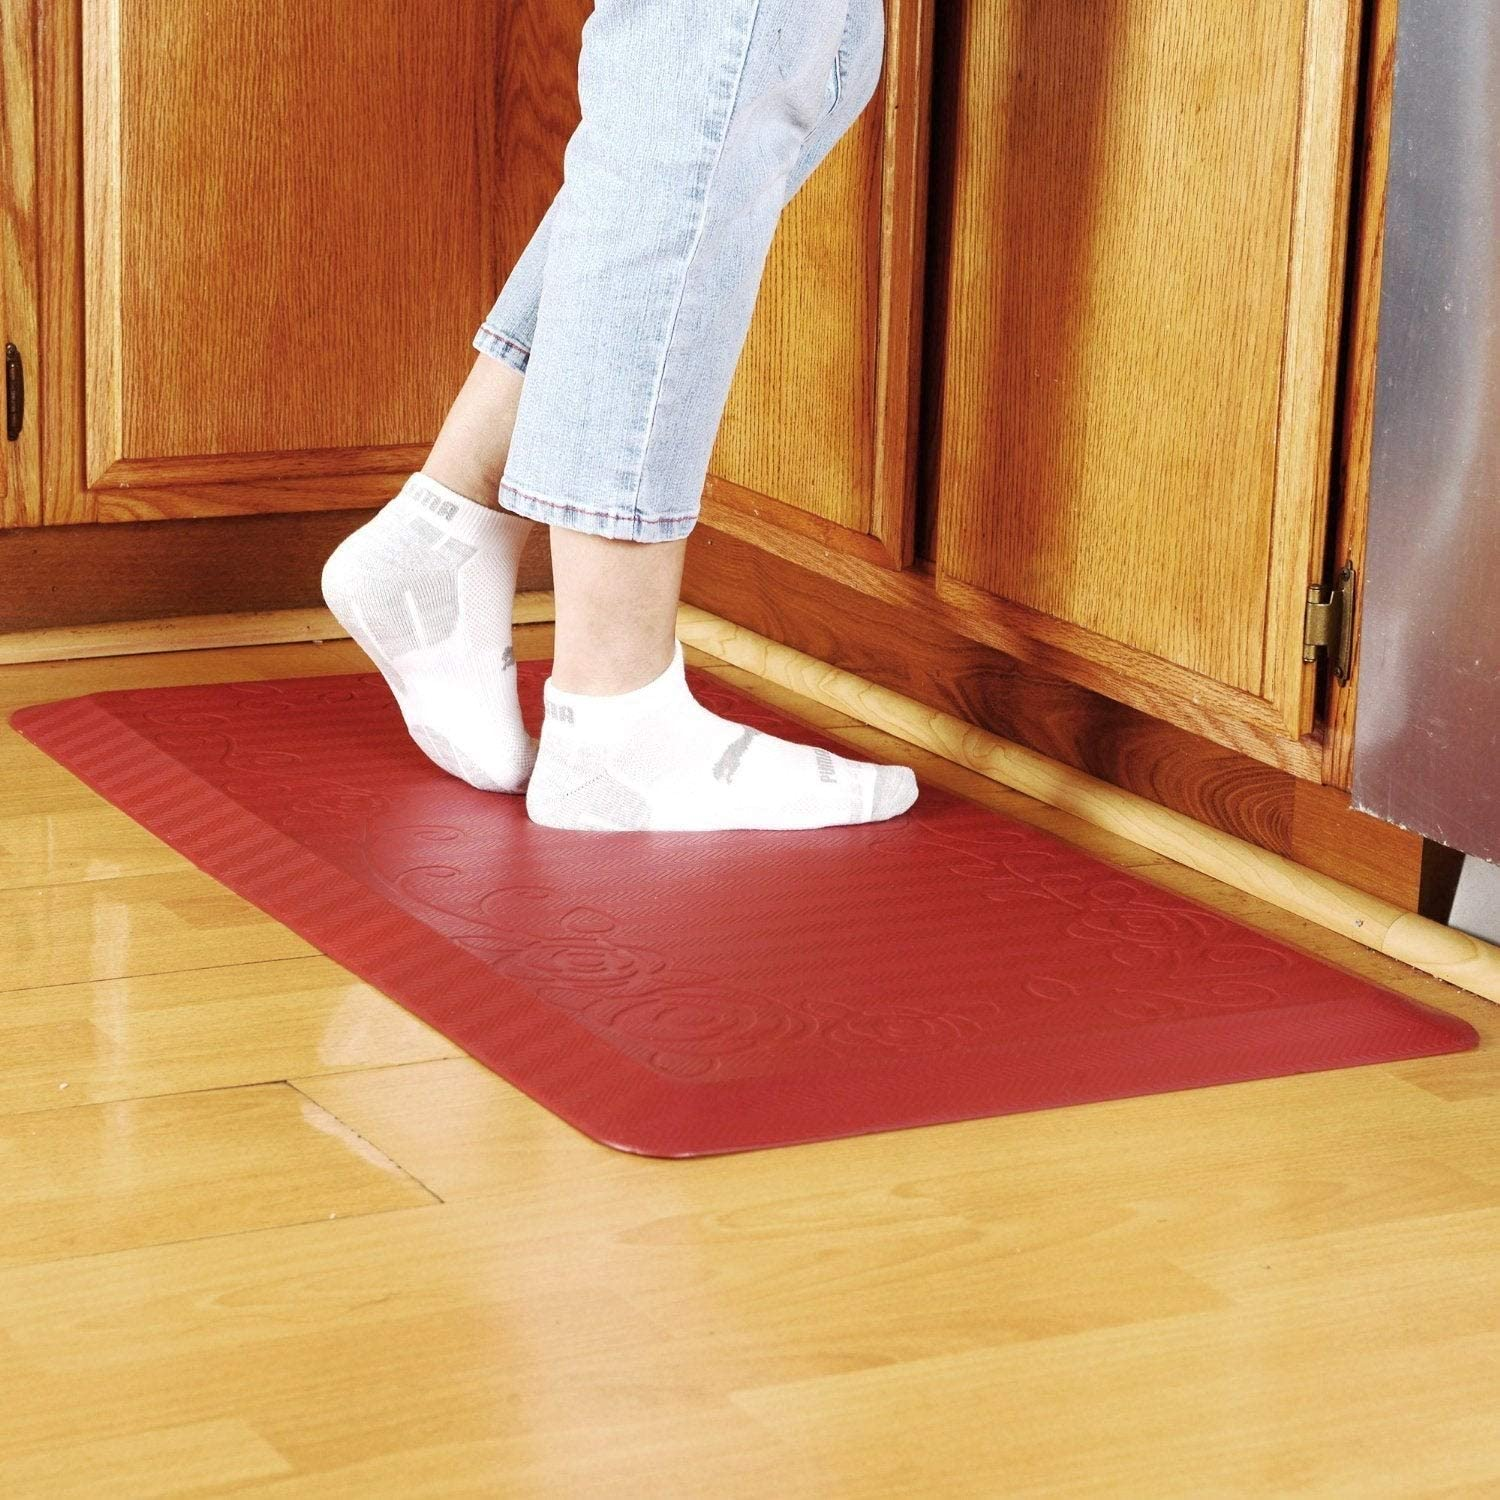 Amazon Com Cook N Home Anti Fatigue Comfort Mat 39 X 20 Red 3 4 Thickness 39 By 20 Kitchen Dining